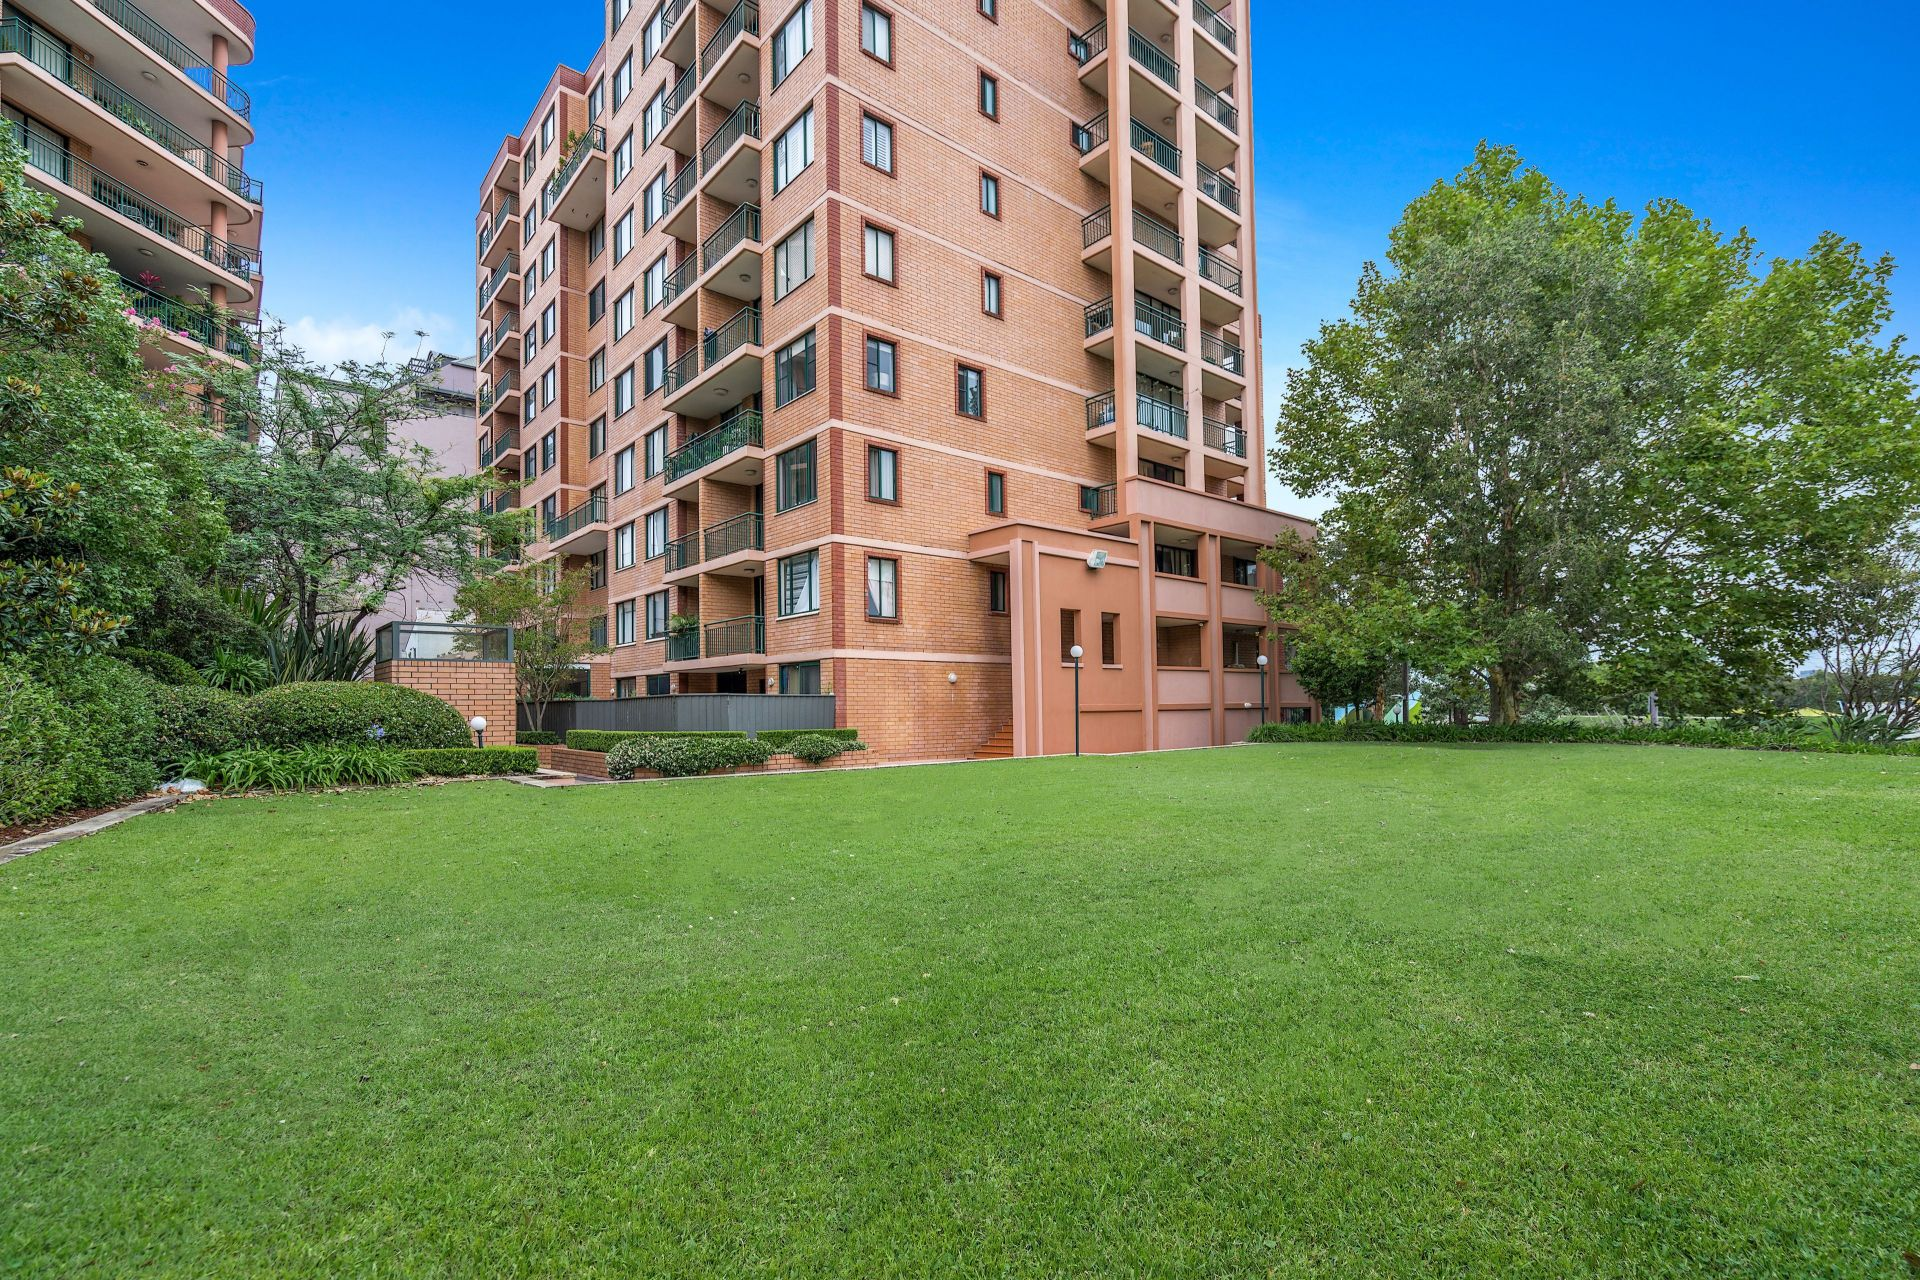 92/156-164 Chalmers Street, Surry Hills